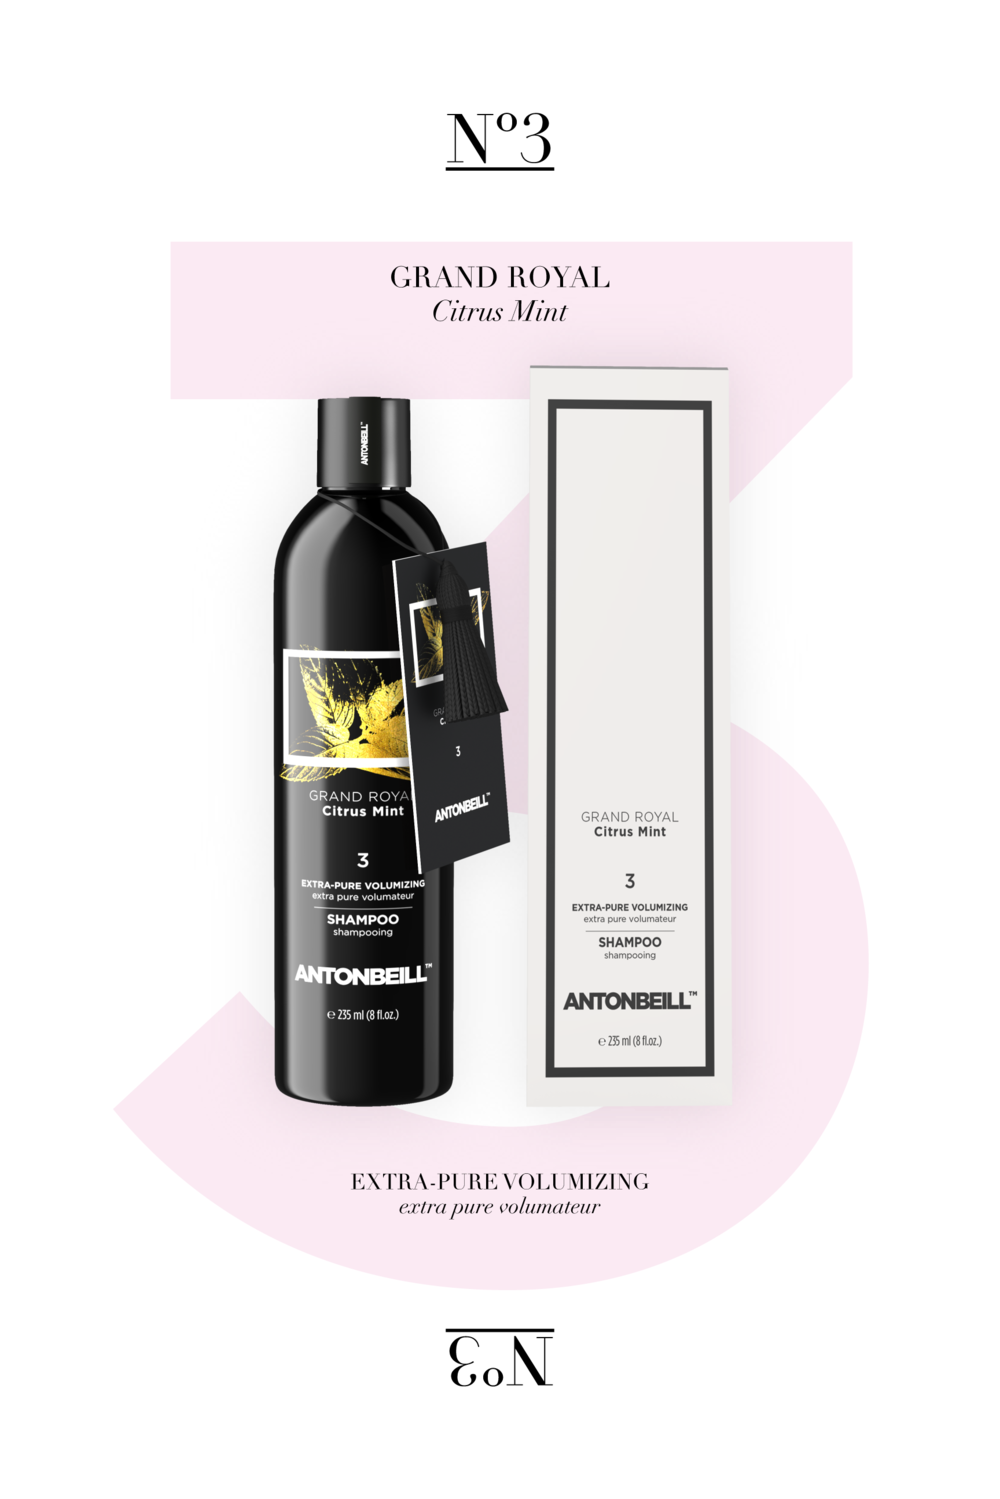 Nº3 Grand Royal Citrus Mint Shampoo - Natural Equilibrium, of Rose, Citrus & Peppermint